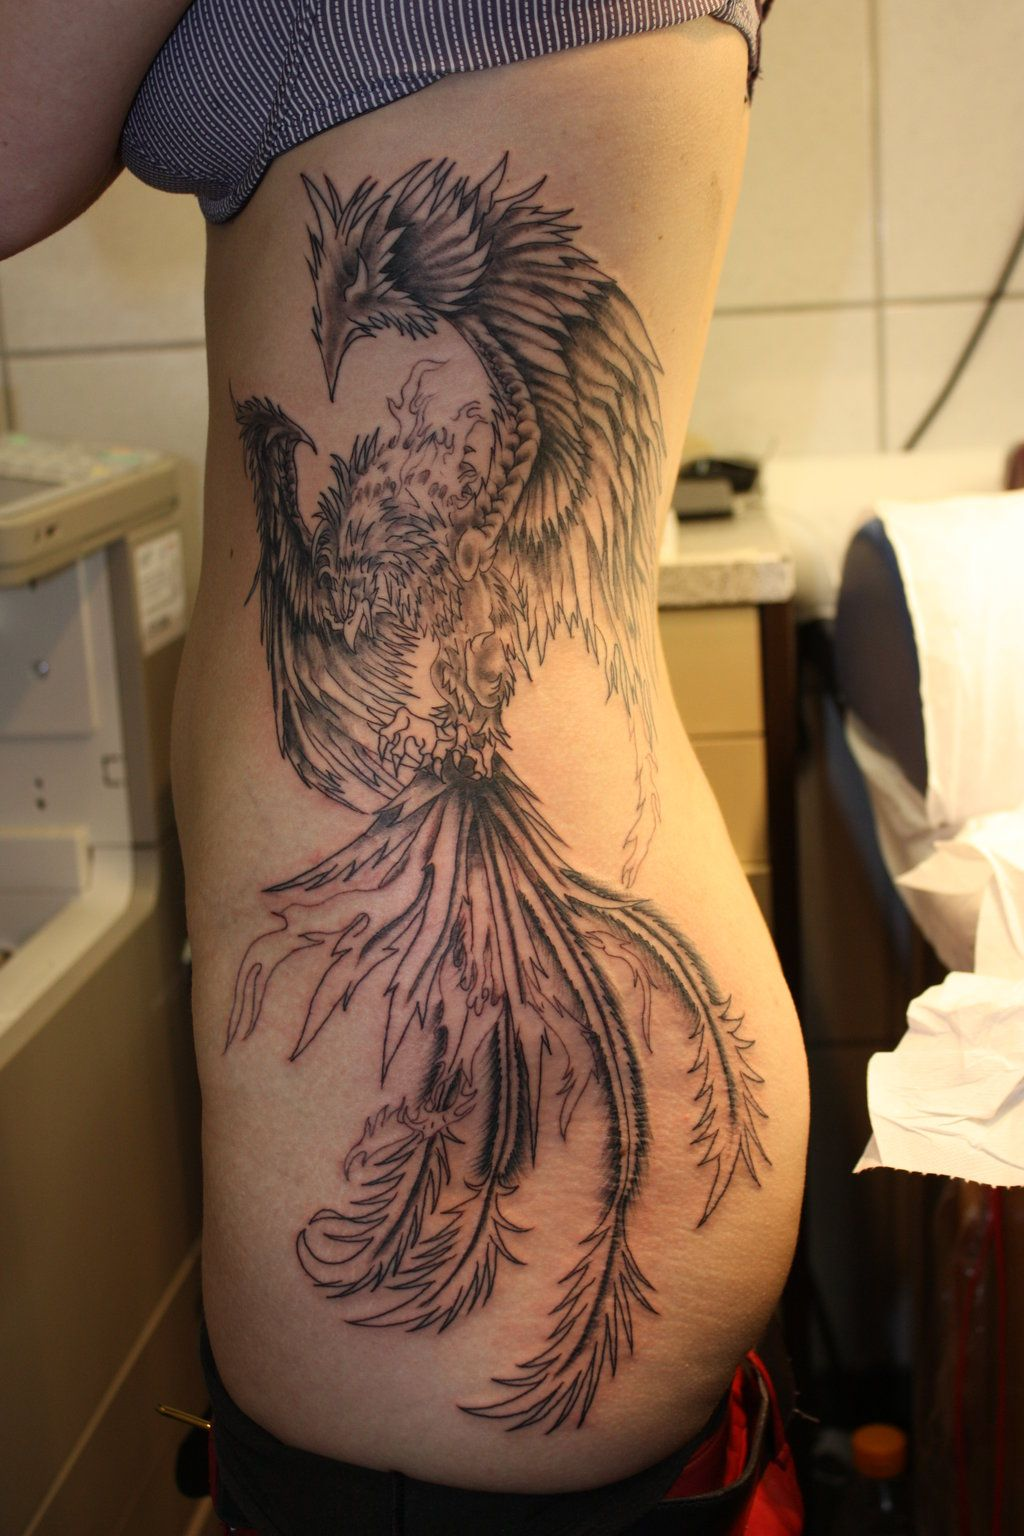 04436467d Phoenix-tattoo 2 by fortuna15.deviantart.com on @DeviantArt ...